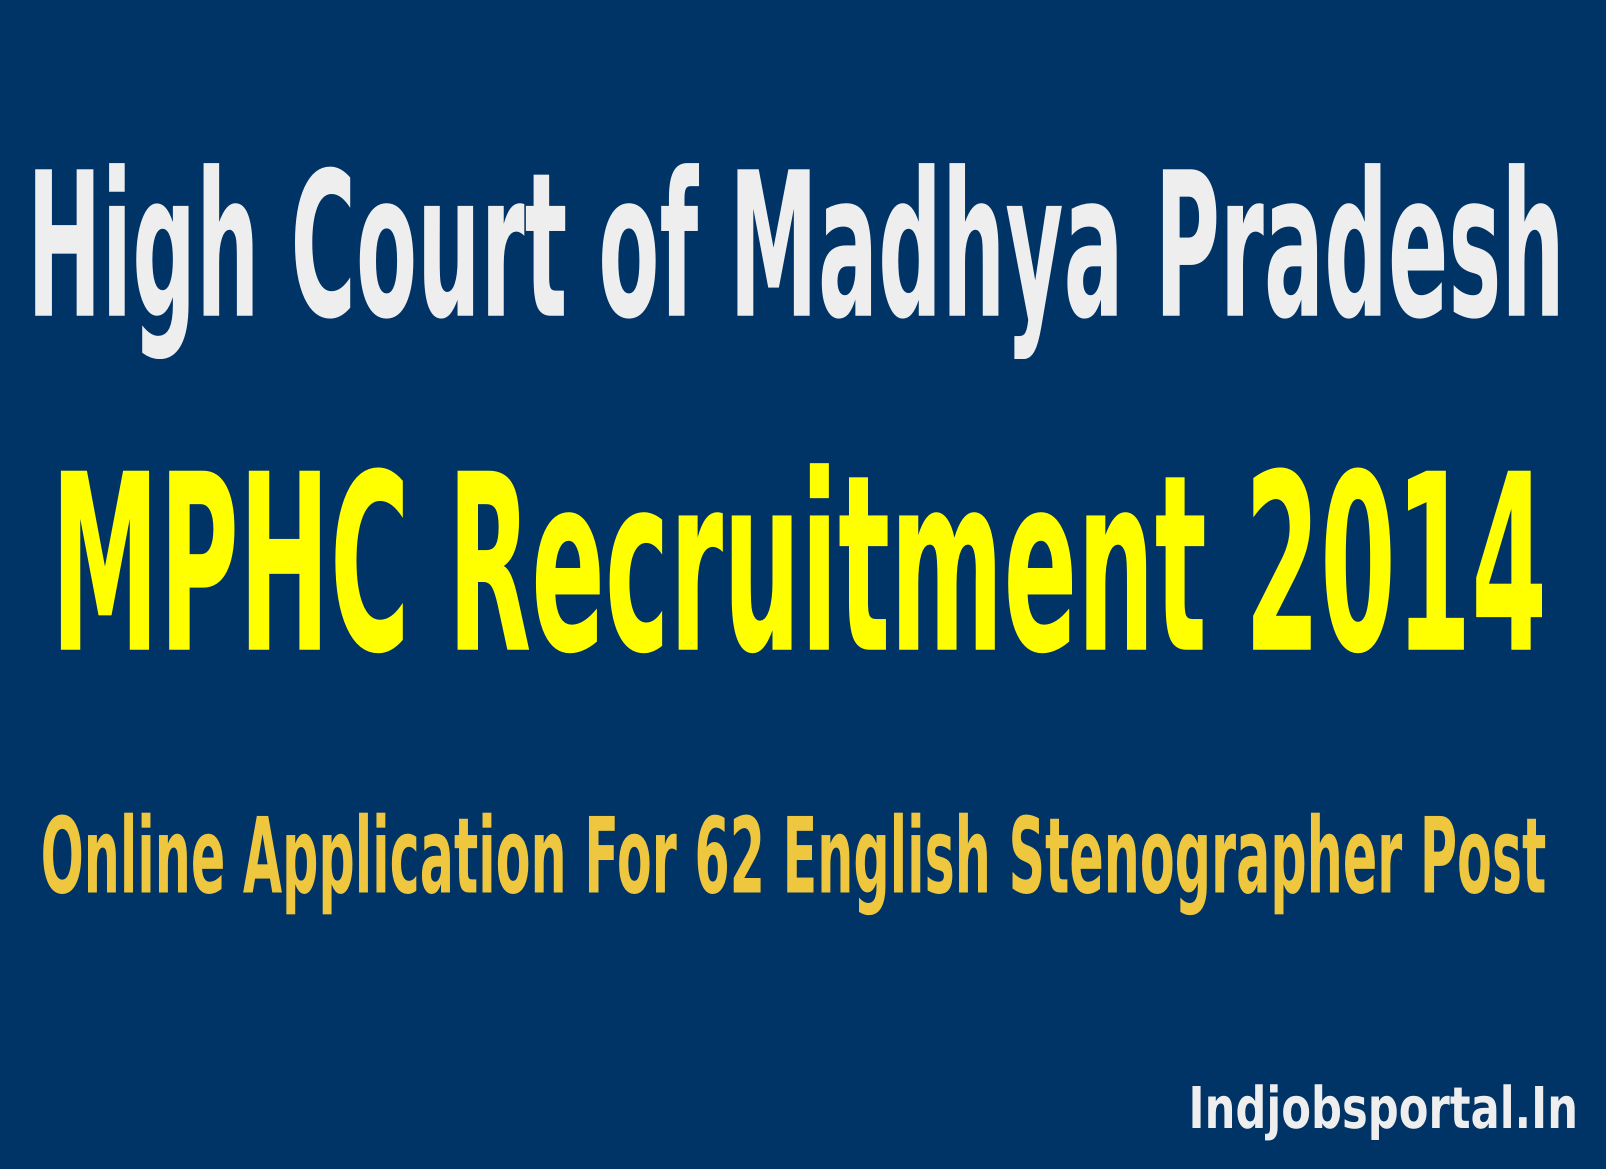 MPHC Recruitment 2014 Online Application For 62 English Stenographer Post